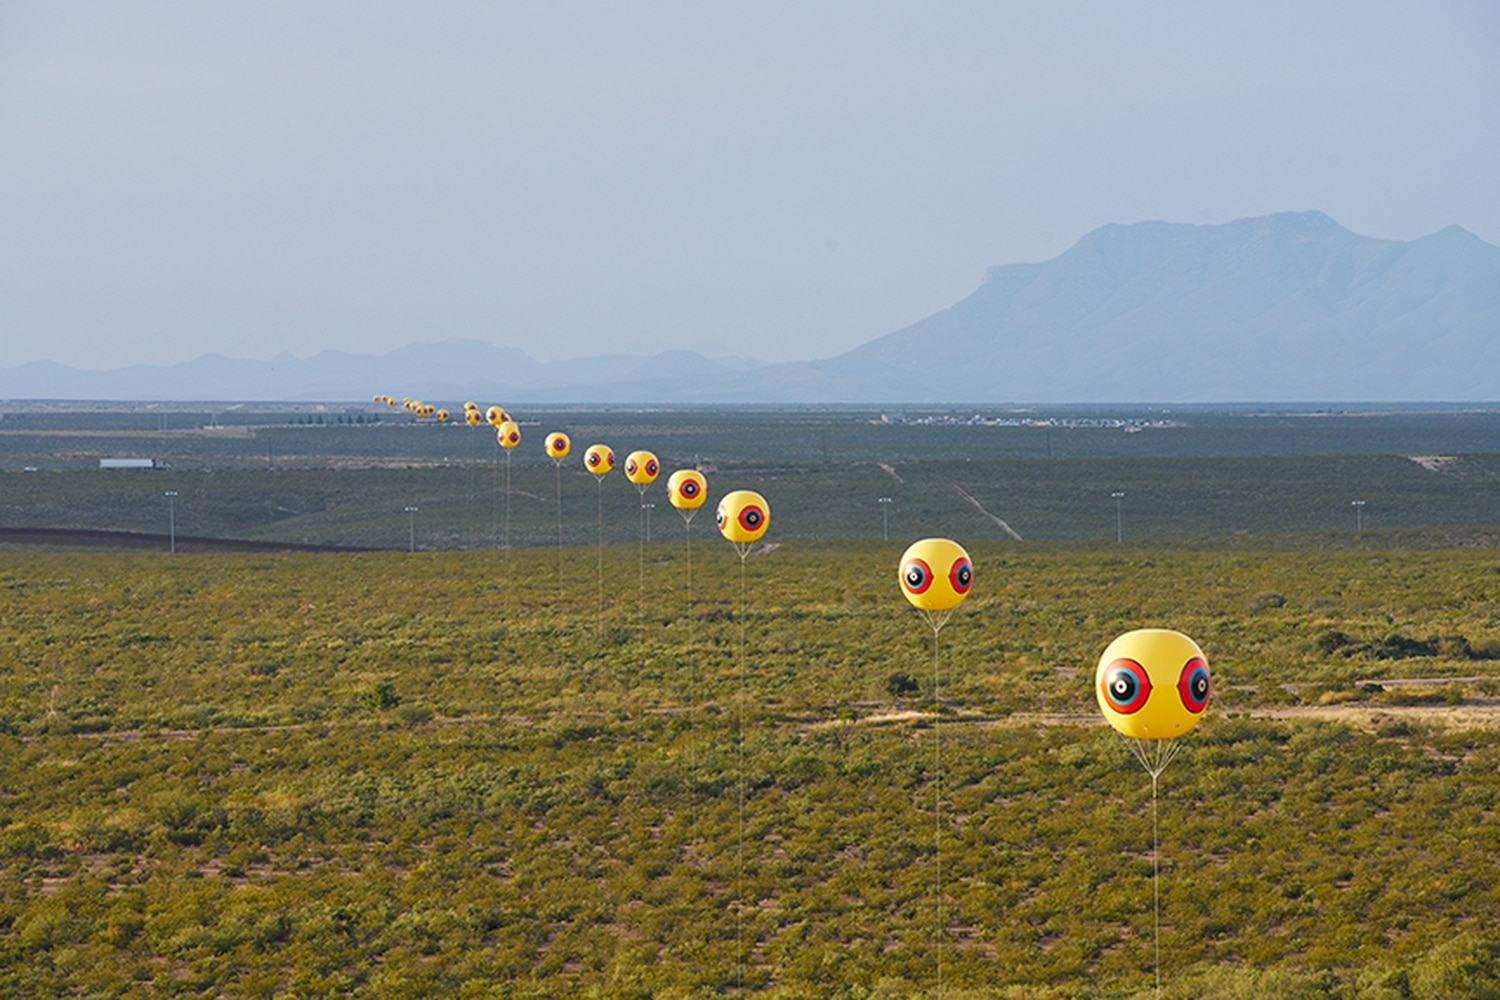 Repellent Fence was comprised of 26 balloons, each 10 feet in diameter, which flew 50 feet above the earth. The line stretched for two miles, from Douglas, Arizona, to Agua Prieta, Sonora, Mexico.